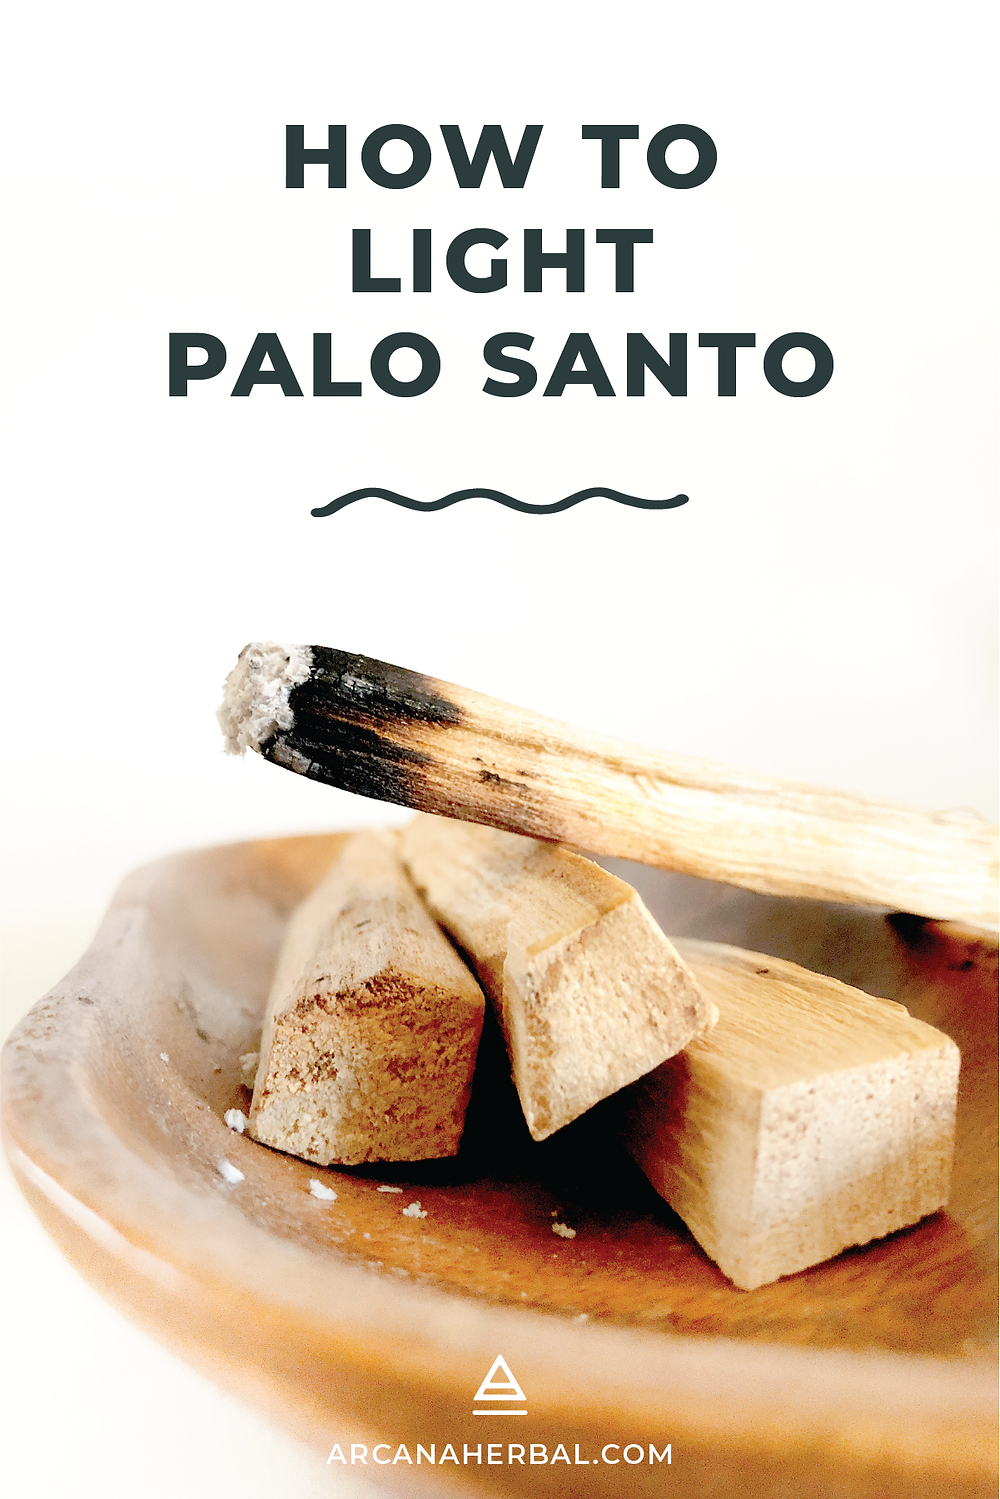 Burning palo santo wood sticks on a wooden tray with a bundle of palo santo sticks.